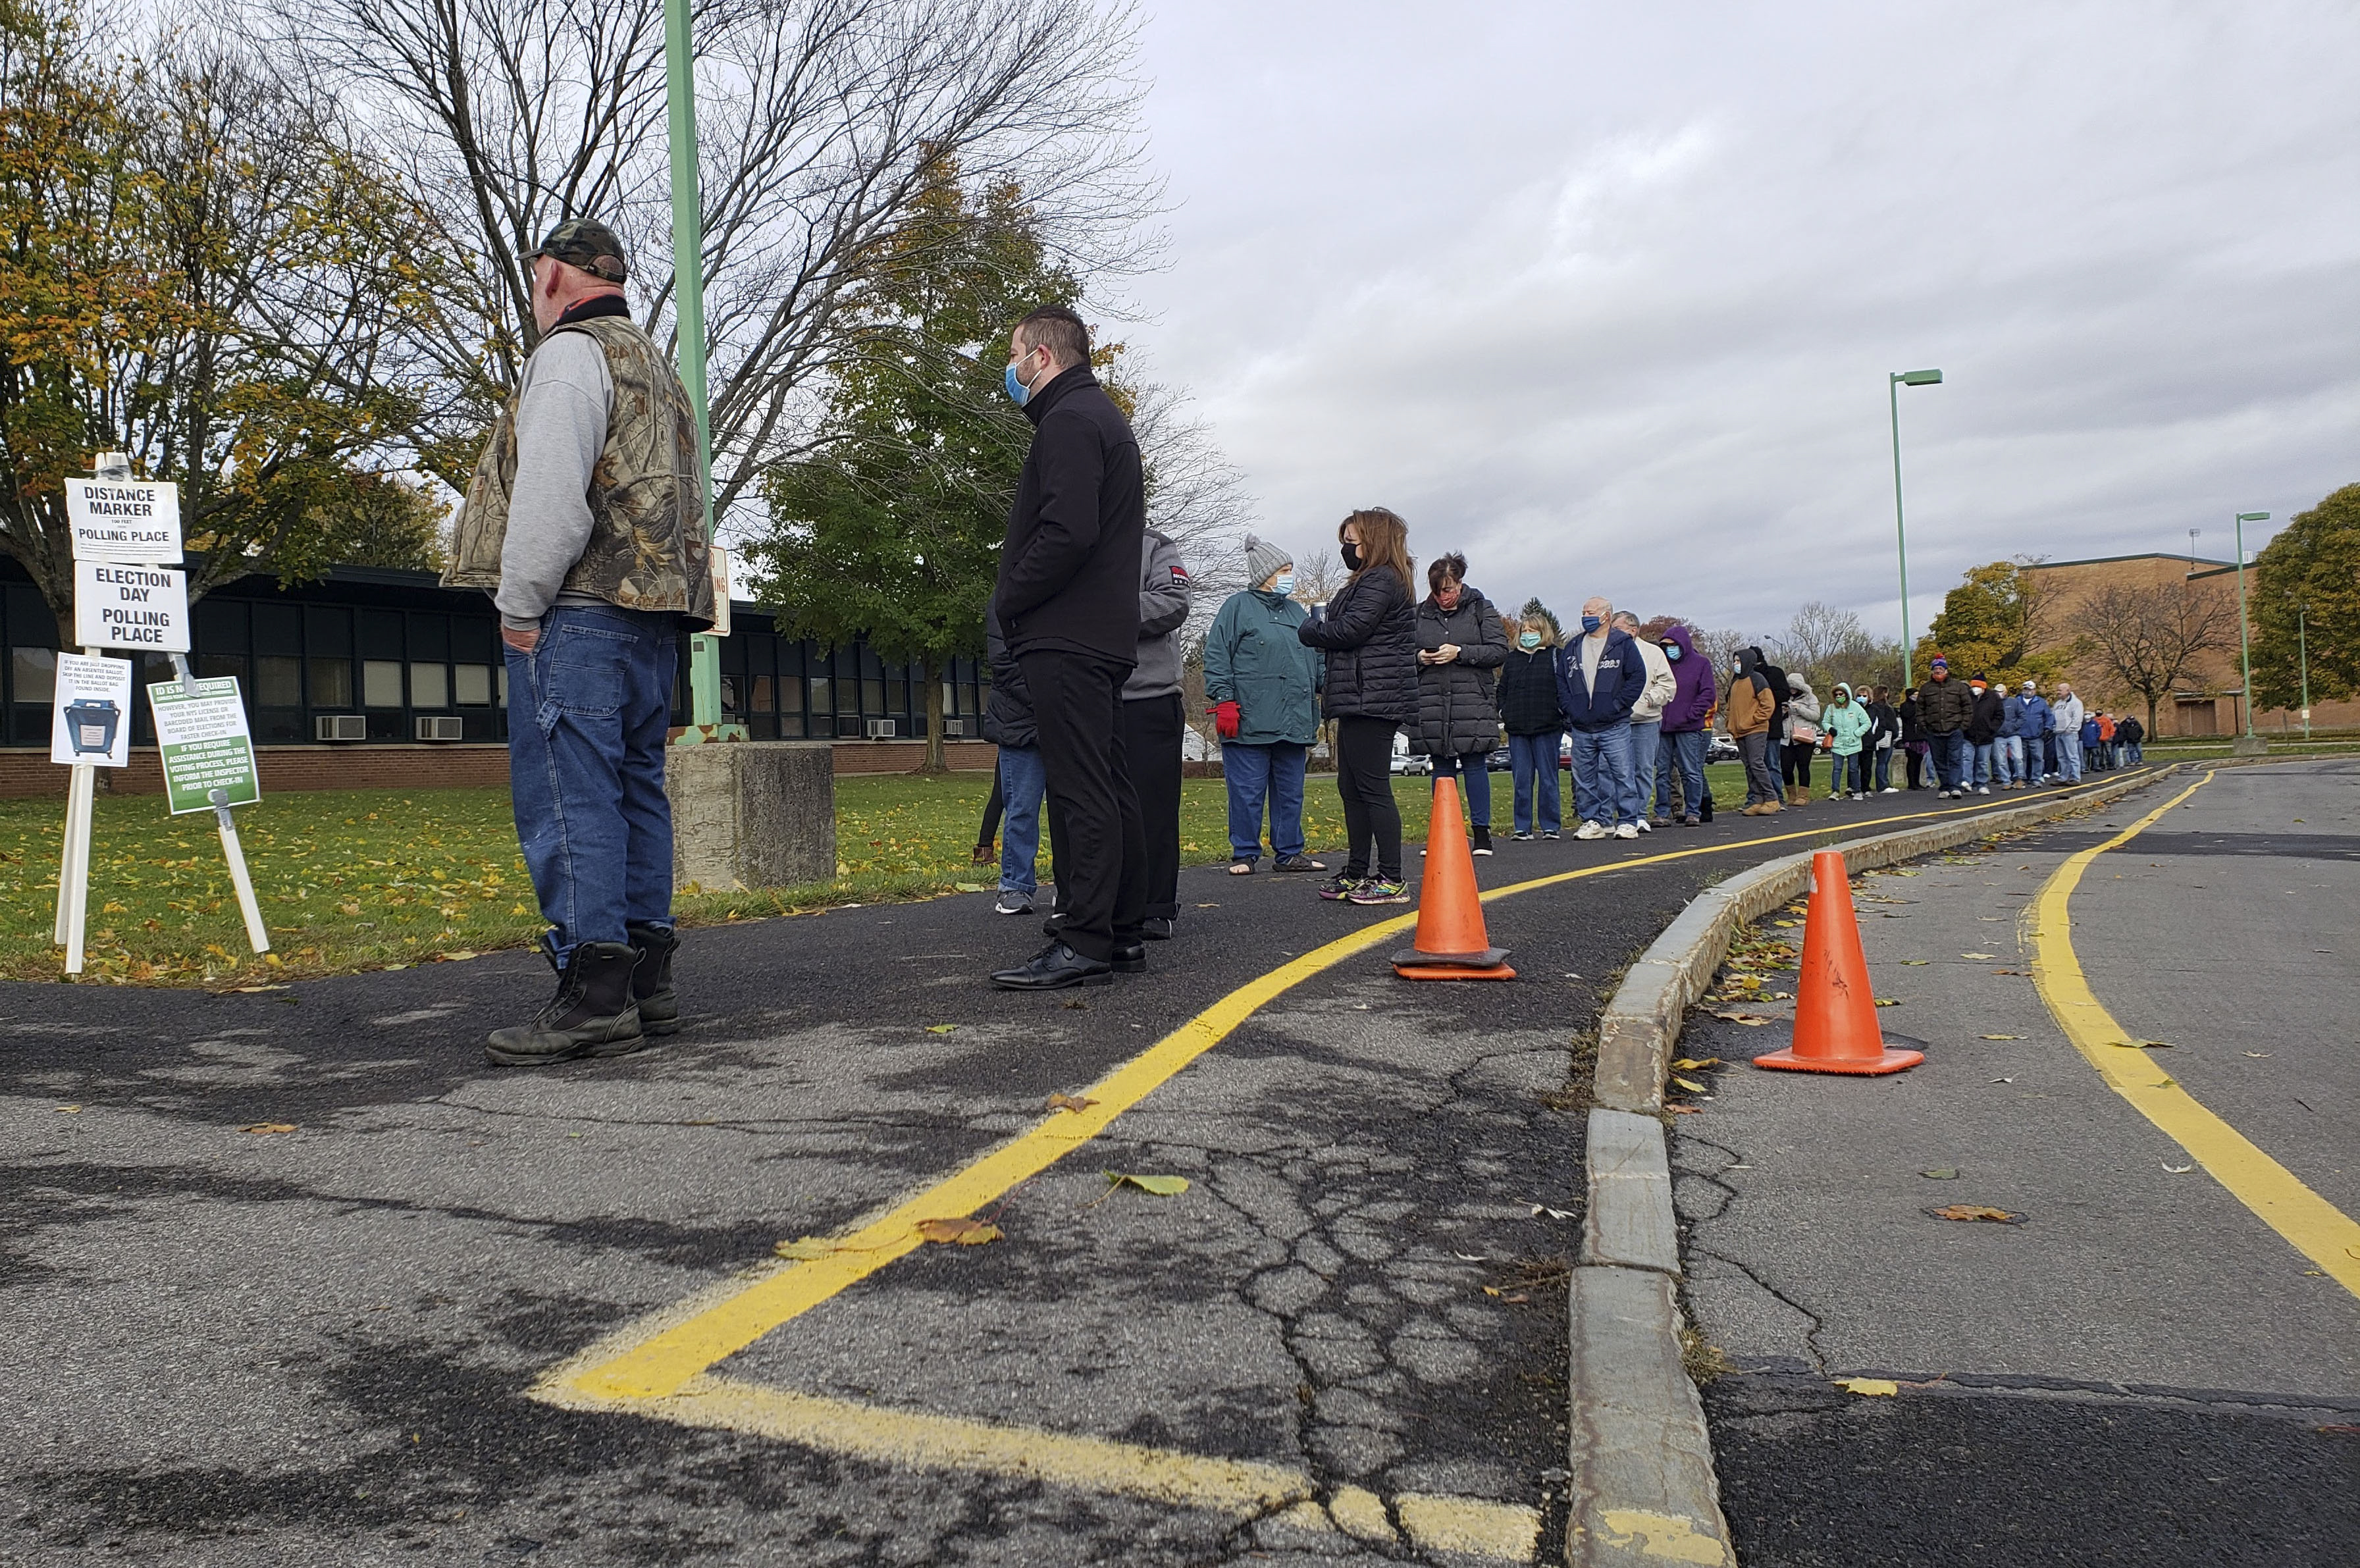 Wait times lasted about 45 minutes at the Northern Syracuse School Office this morning as voters waited patently budled and masked up.